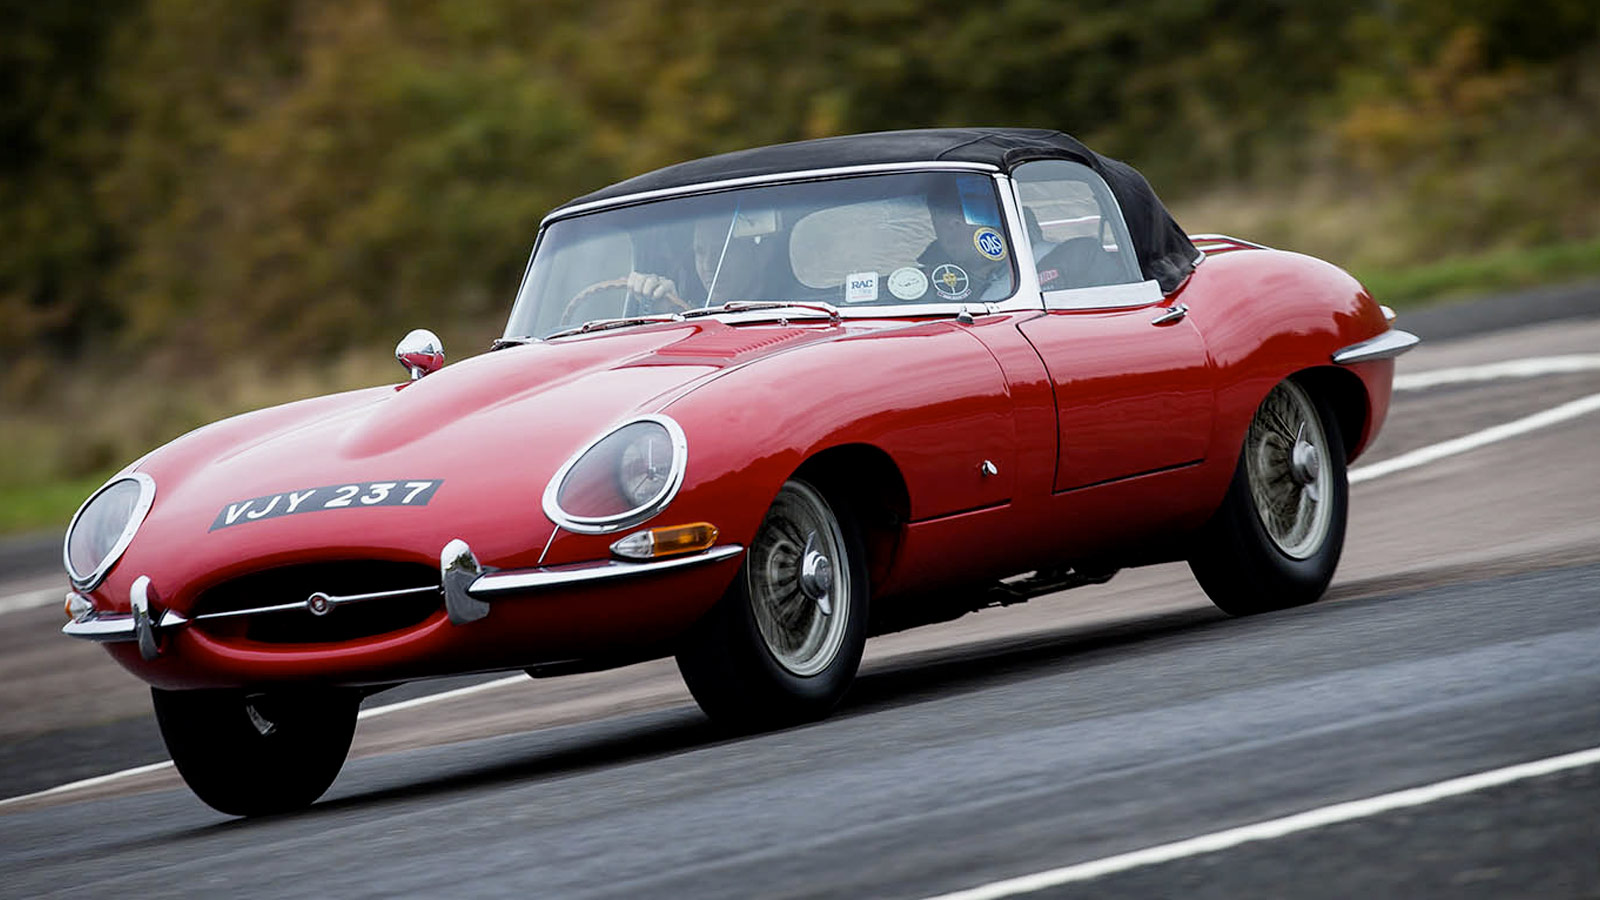 red classic Jaguar driving on road.